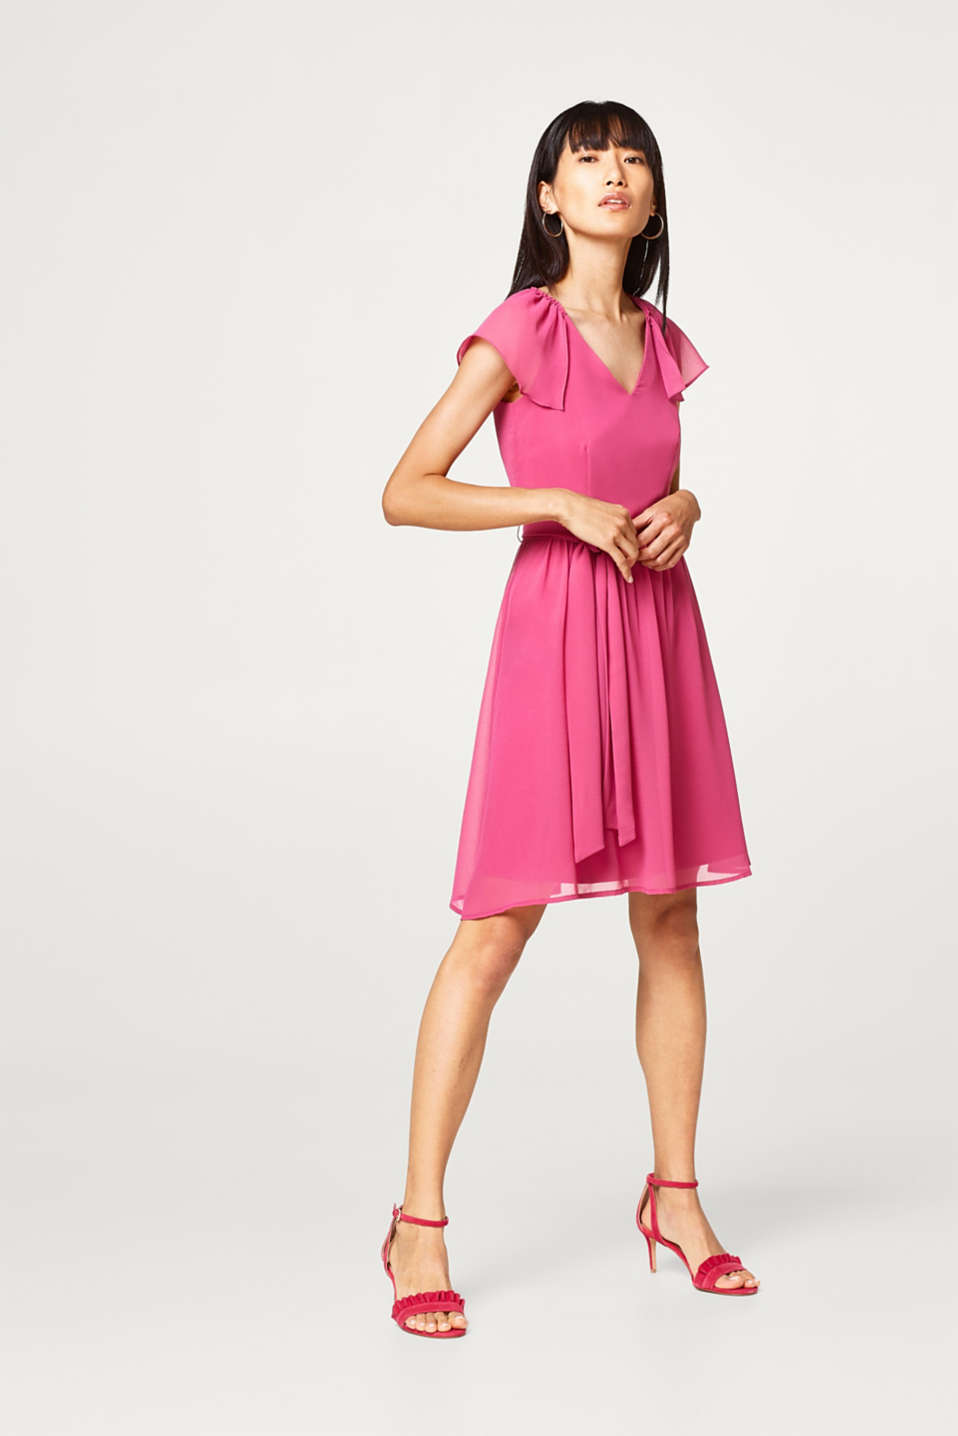 Esprit - Lightweight chiffon dress with cap sleeves